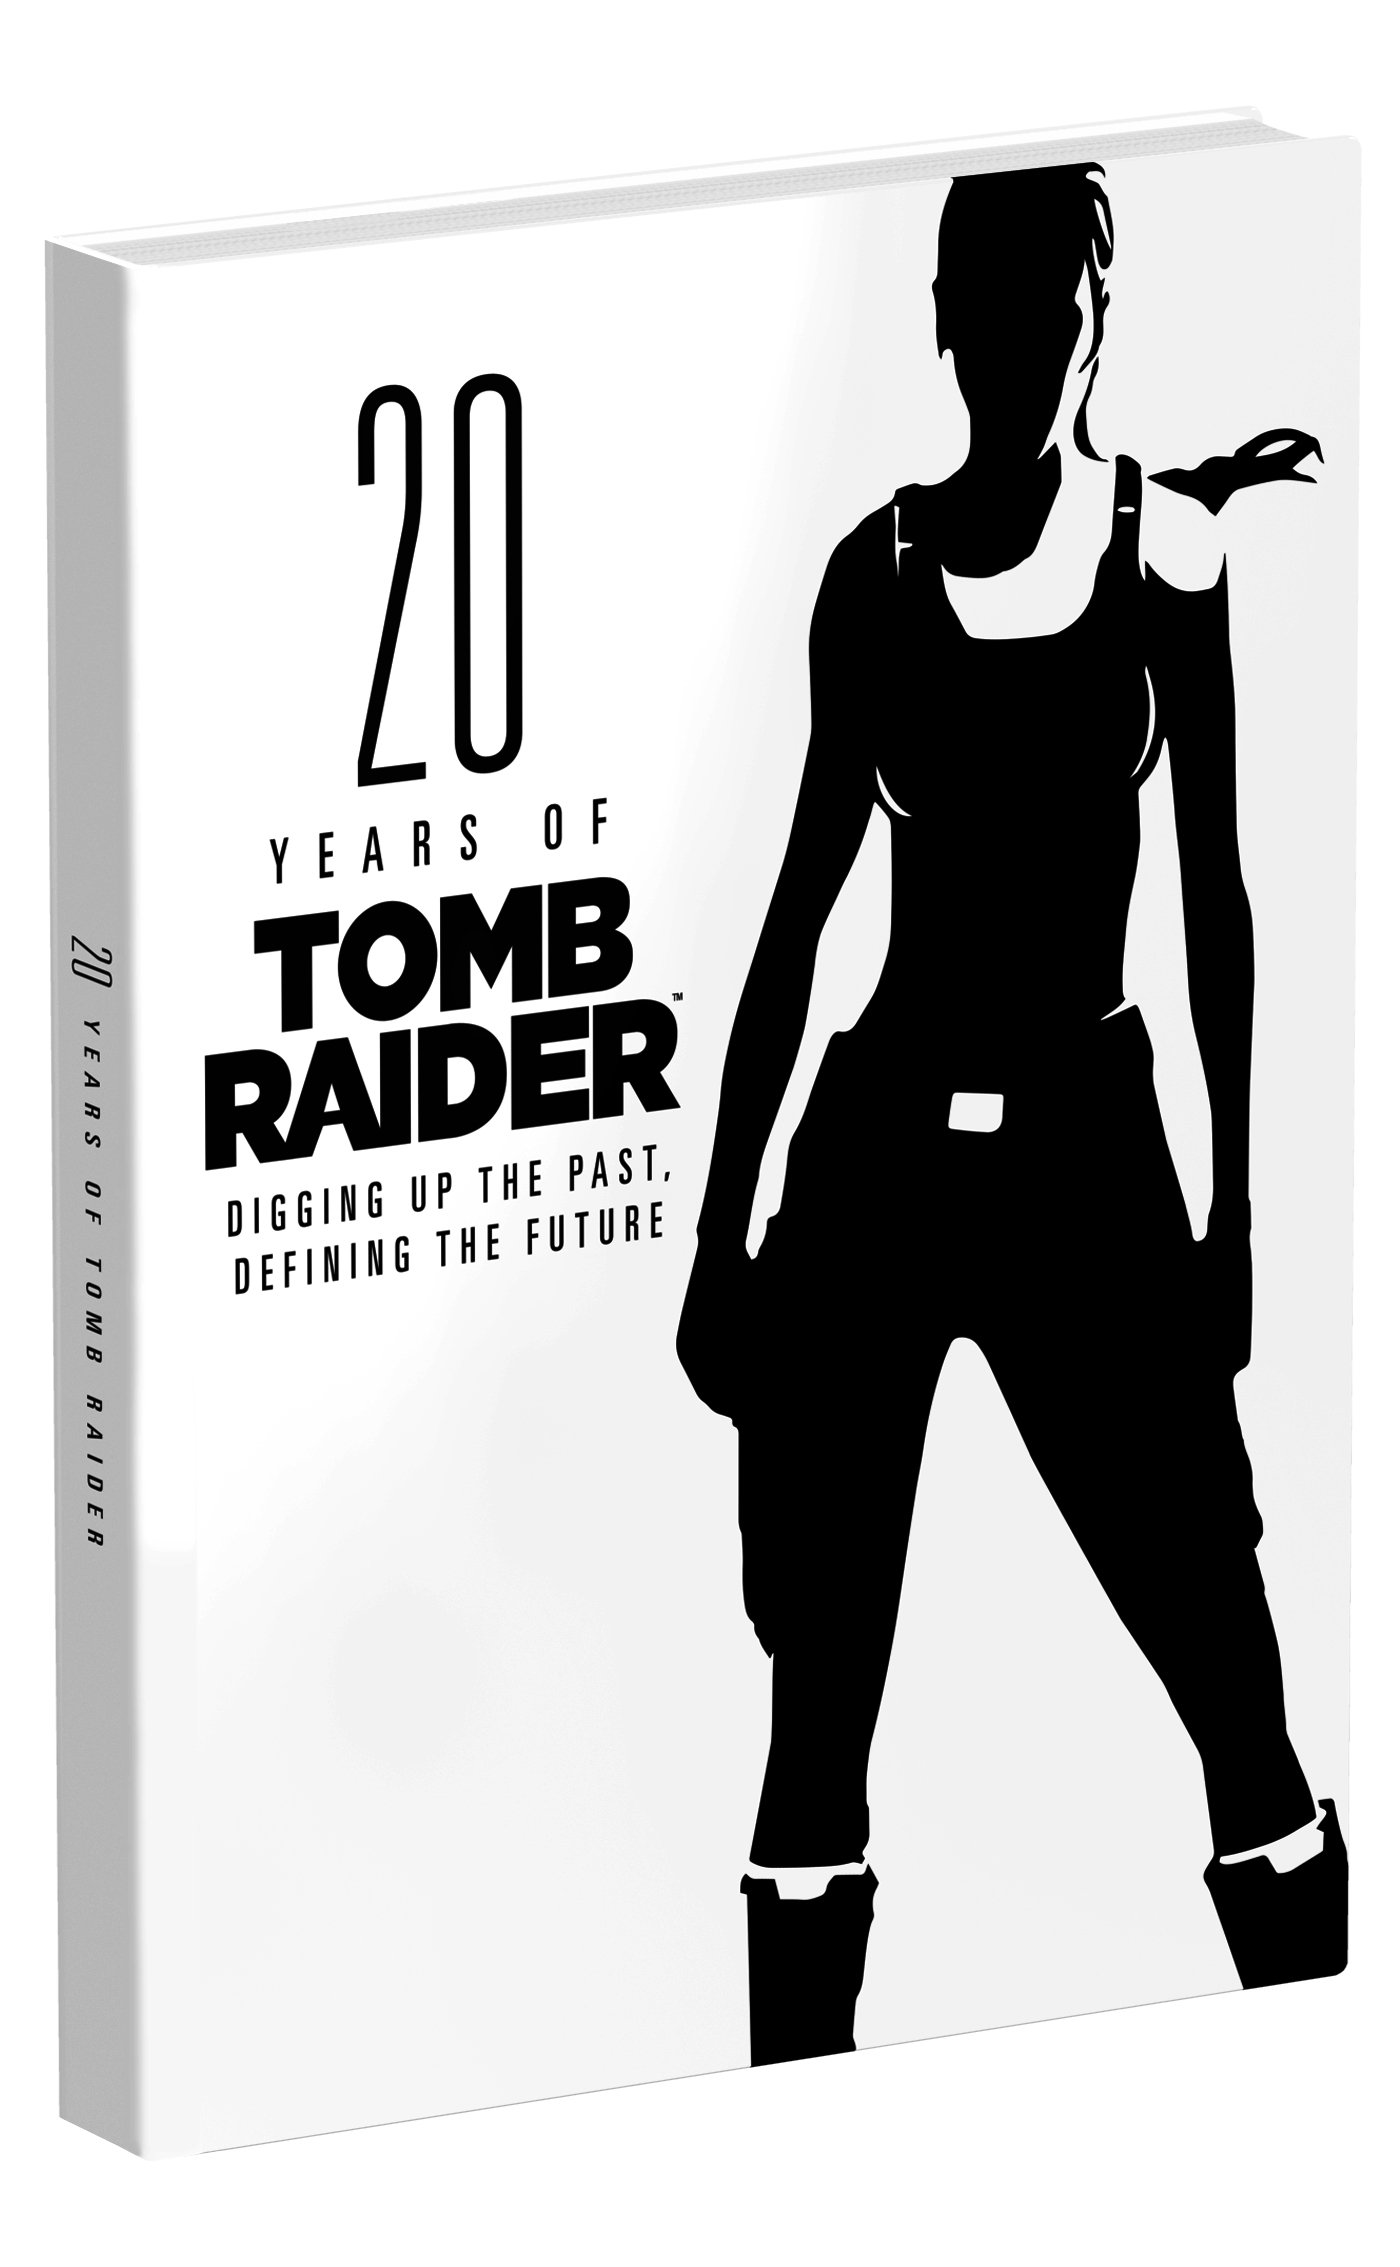 '20 Years of Tomb Raider' Book Due Out in Late October